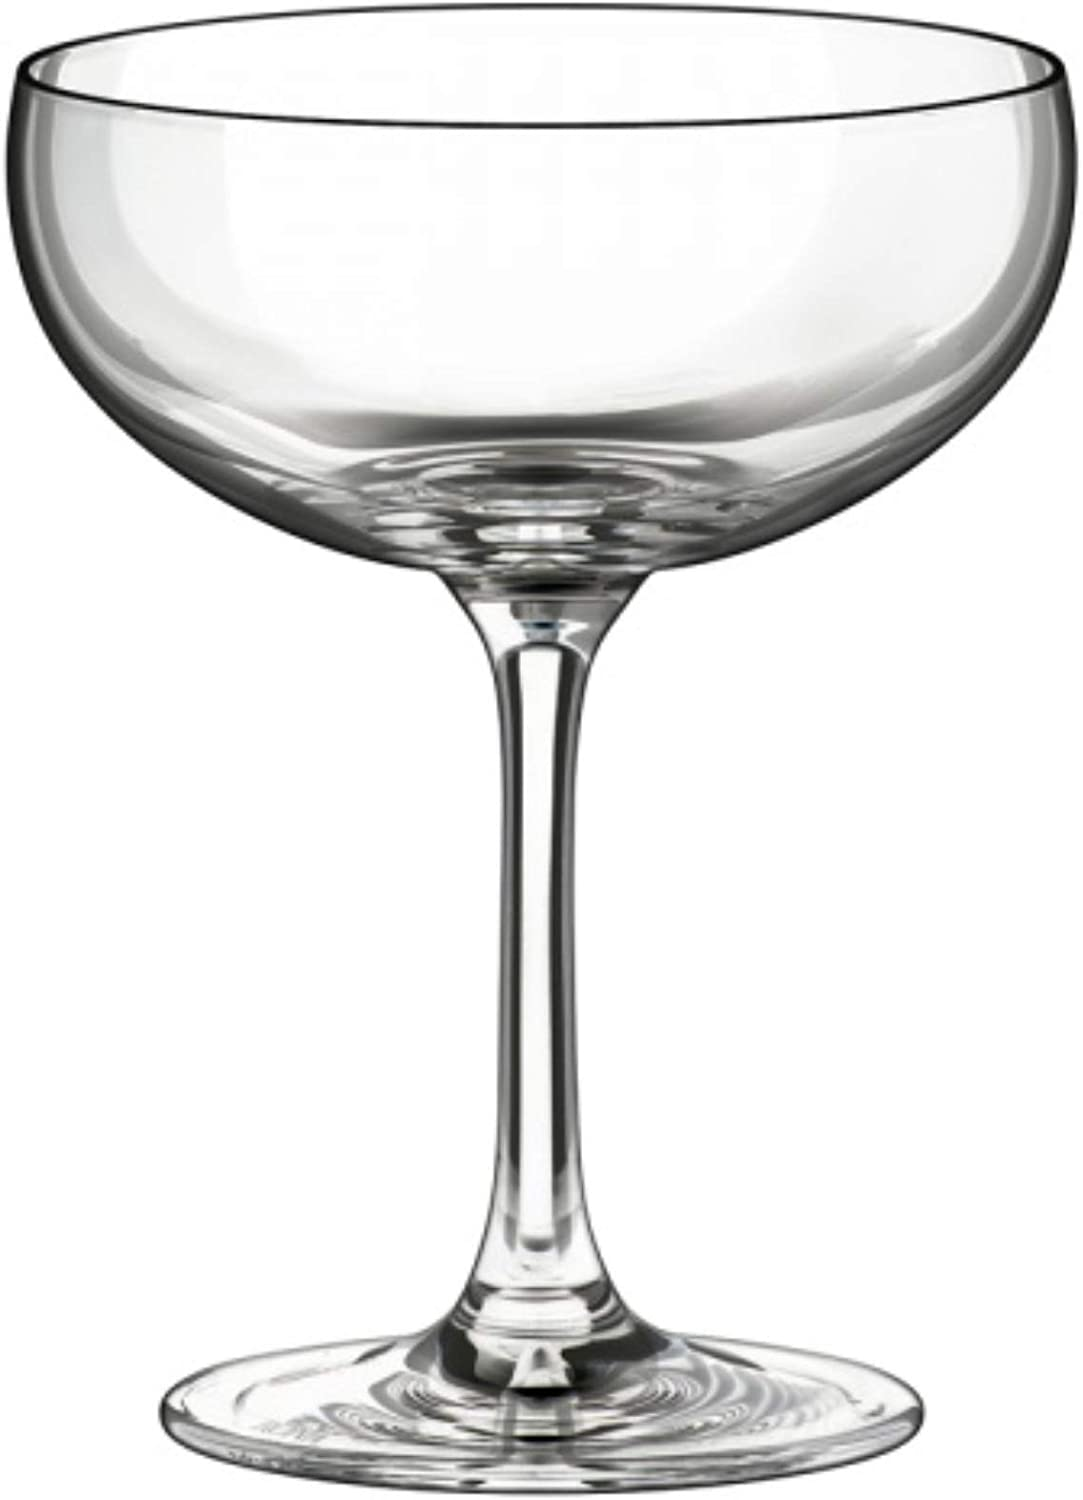 RONA Champagne Coupe Opening large release sale Max 85% OFF Glass